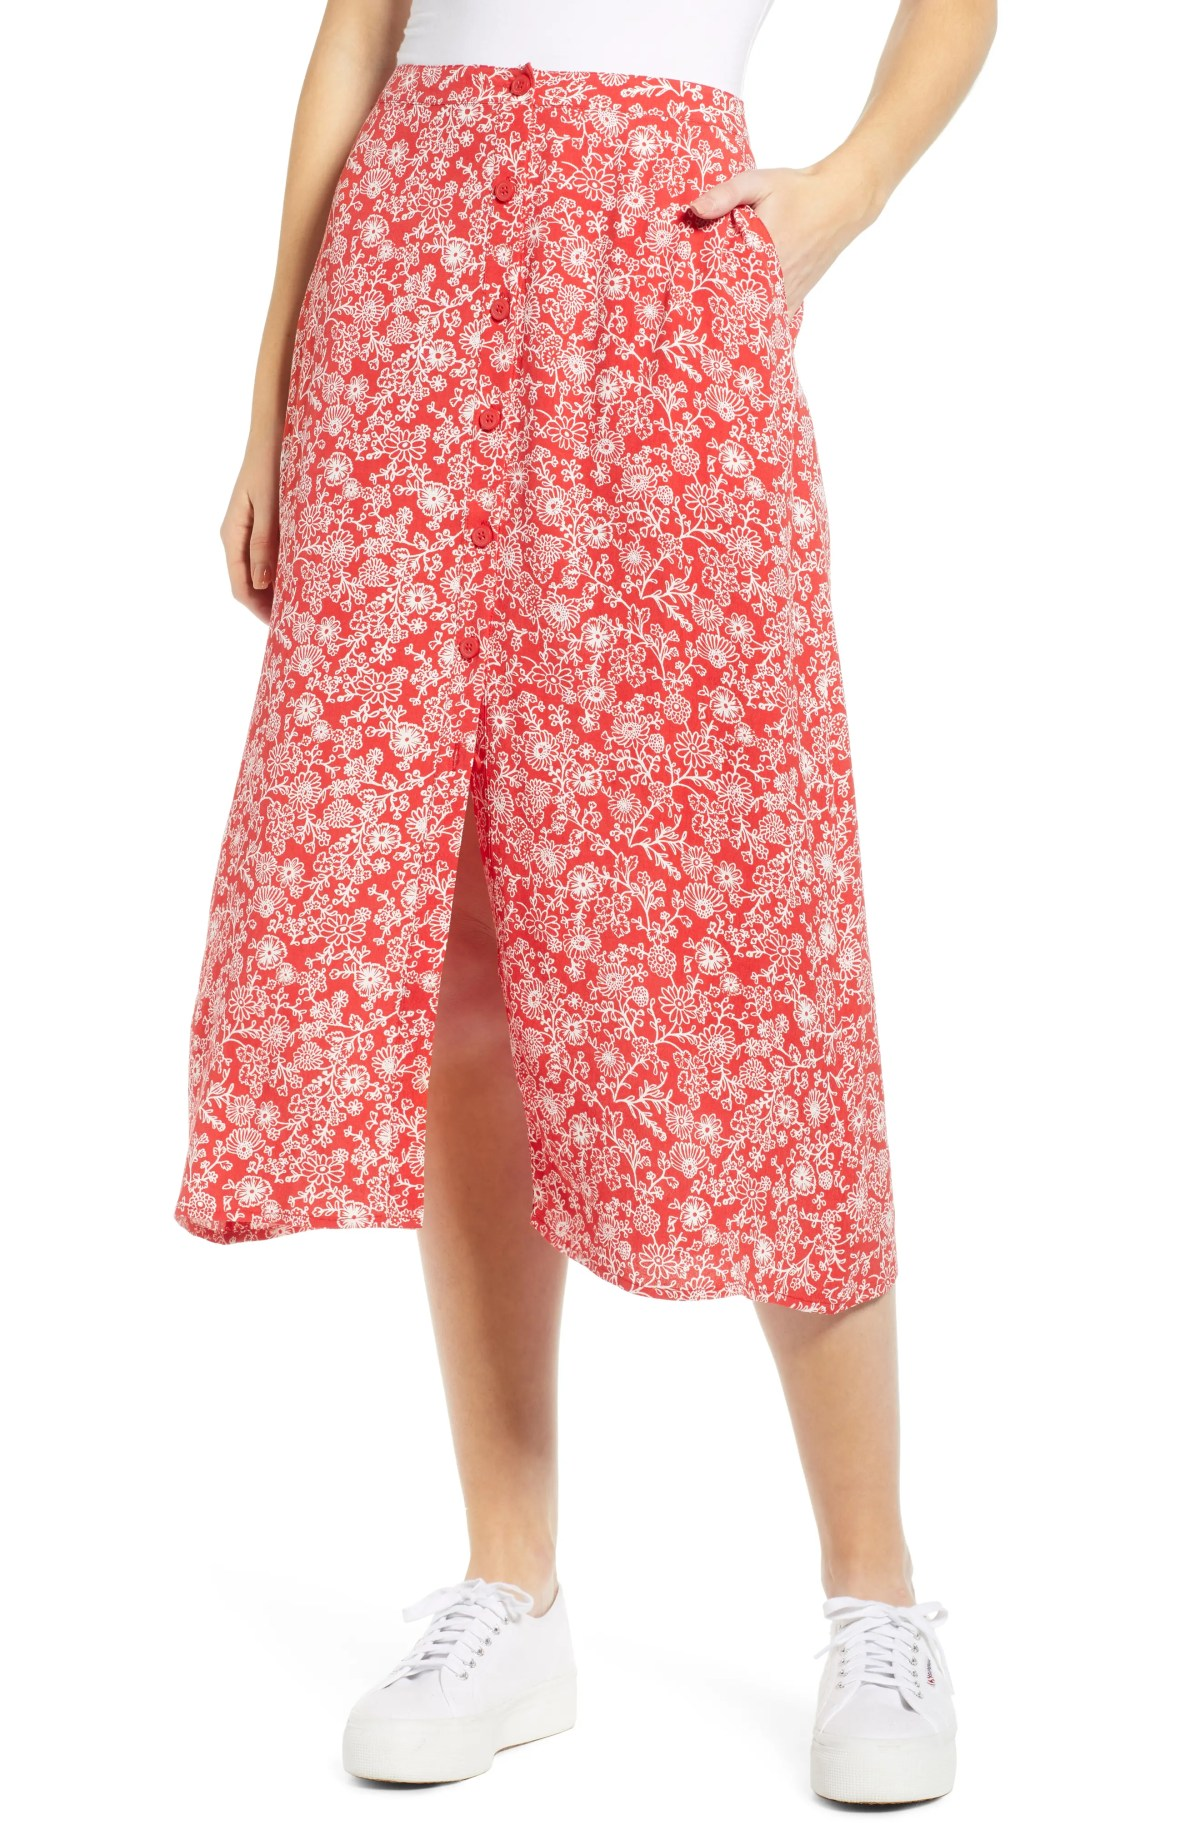 Floral Midi Skirt, Main, color, RED BLOOM VINED DAISIES